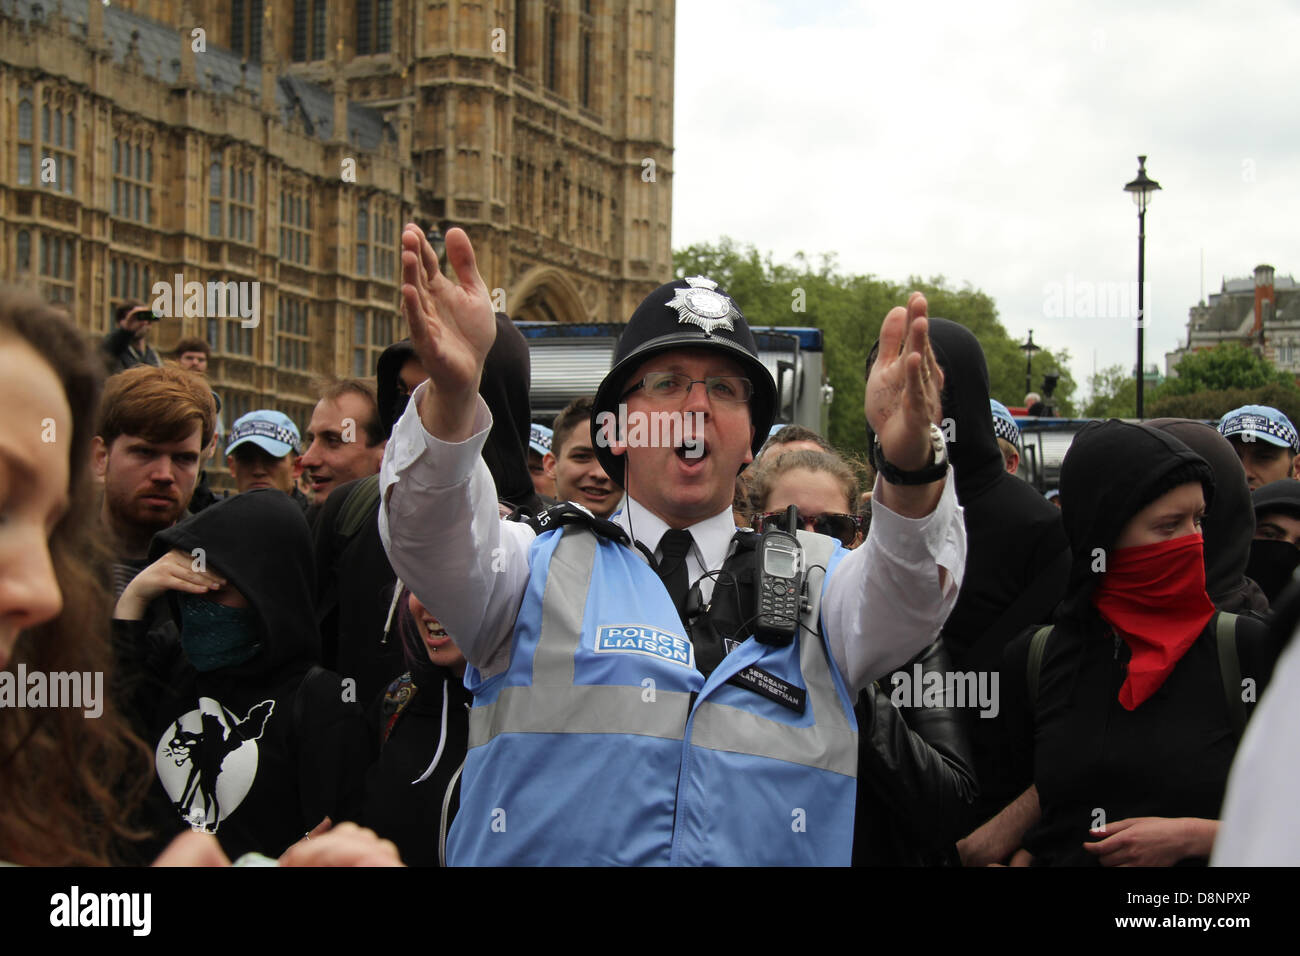 London, UK. 1st June, 2013. A police officer attempts to get the United Against Fascism supporters from blocking Stock Photo